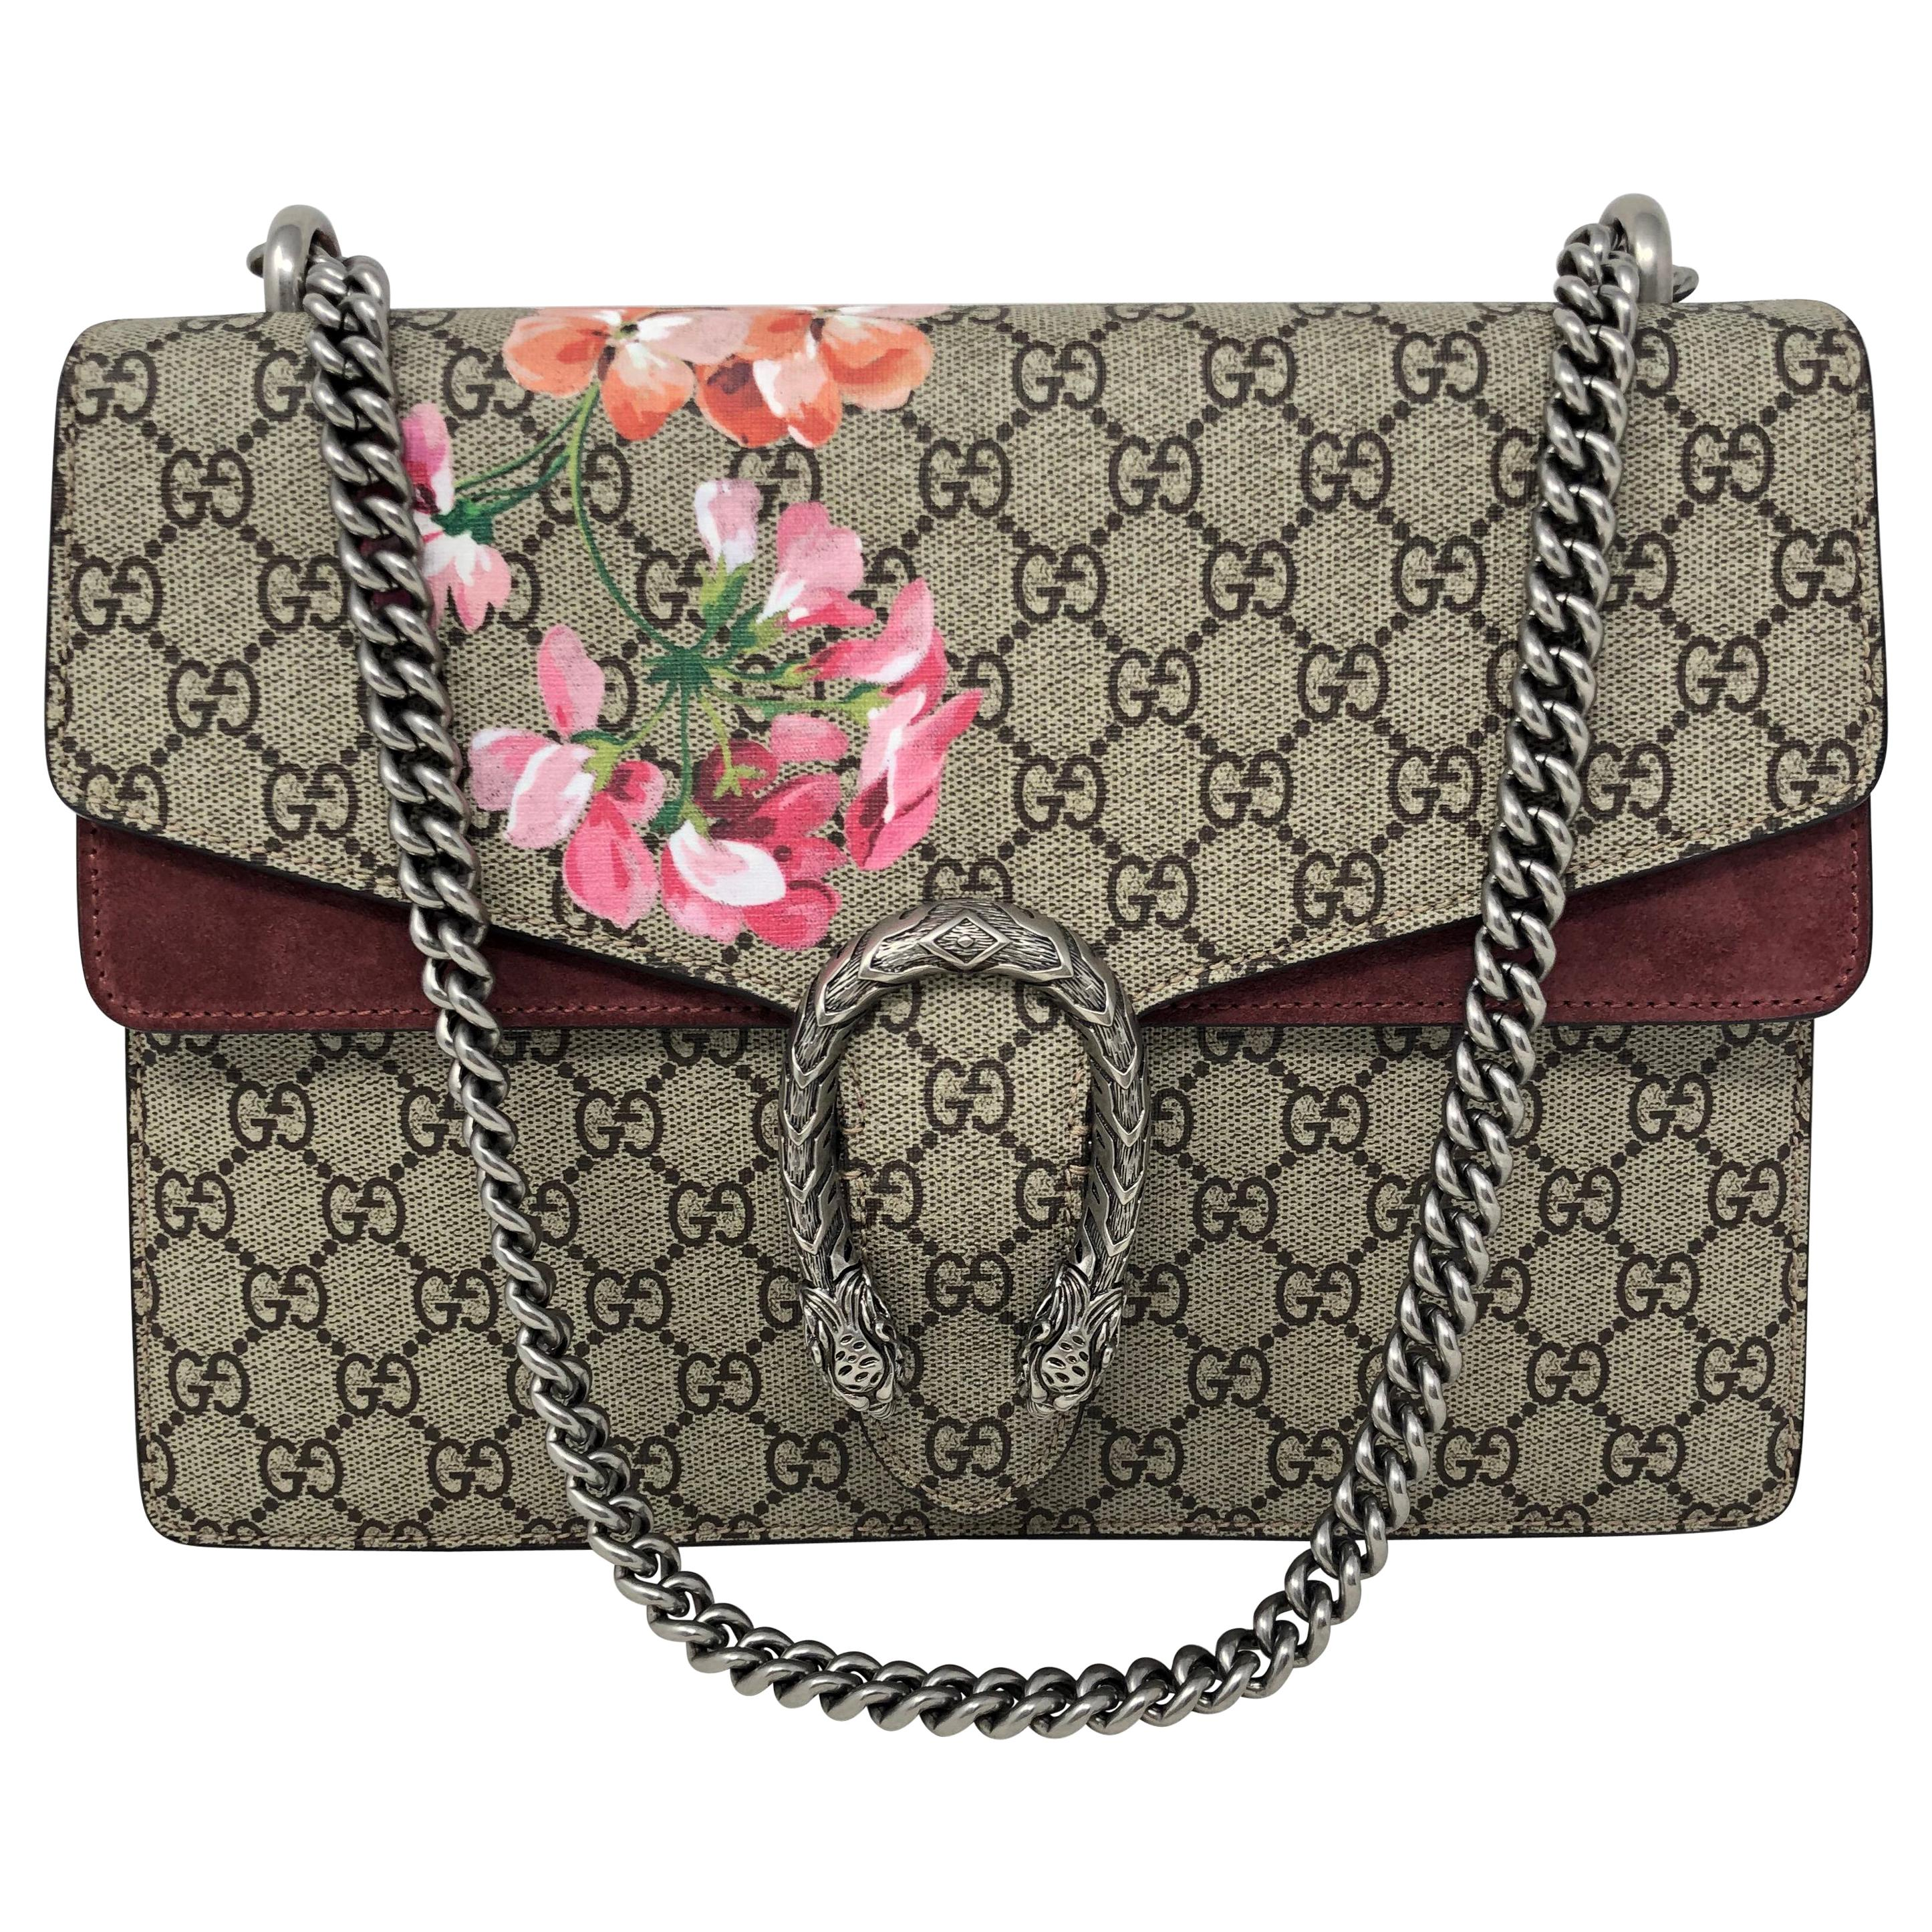 efb615a1a Vintage Gucci Handbags and Purses - 2,355 For Sale at 1stdibs